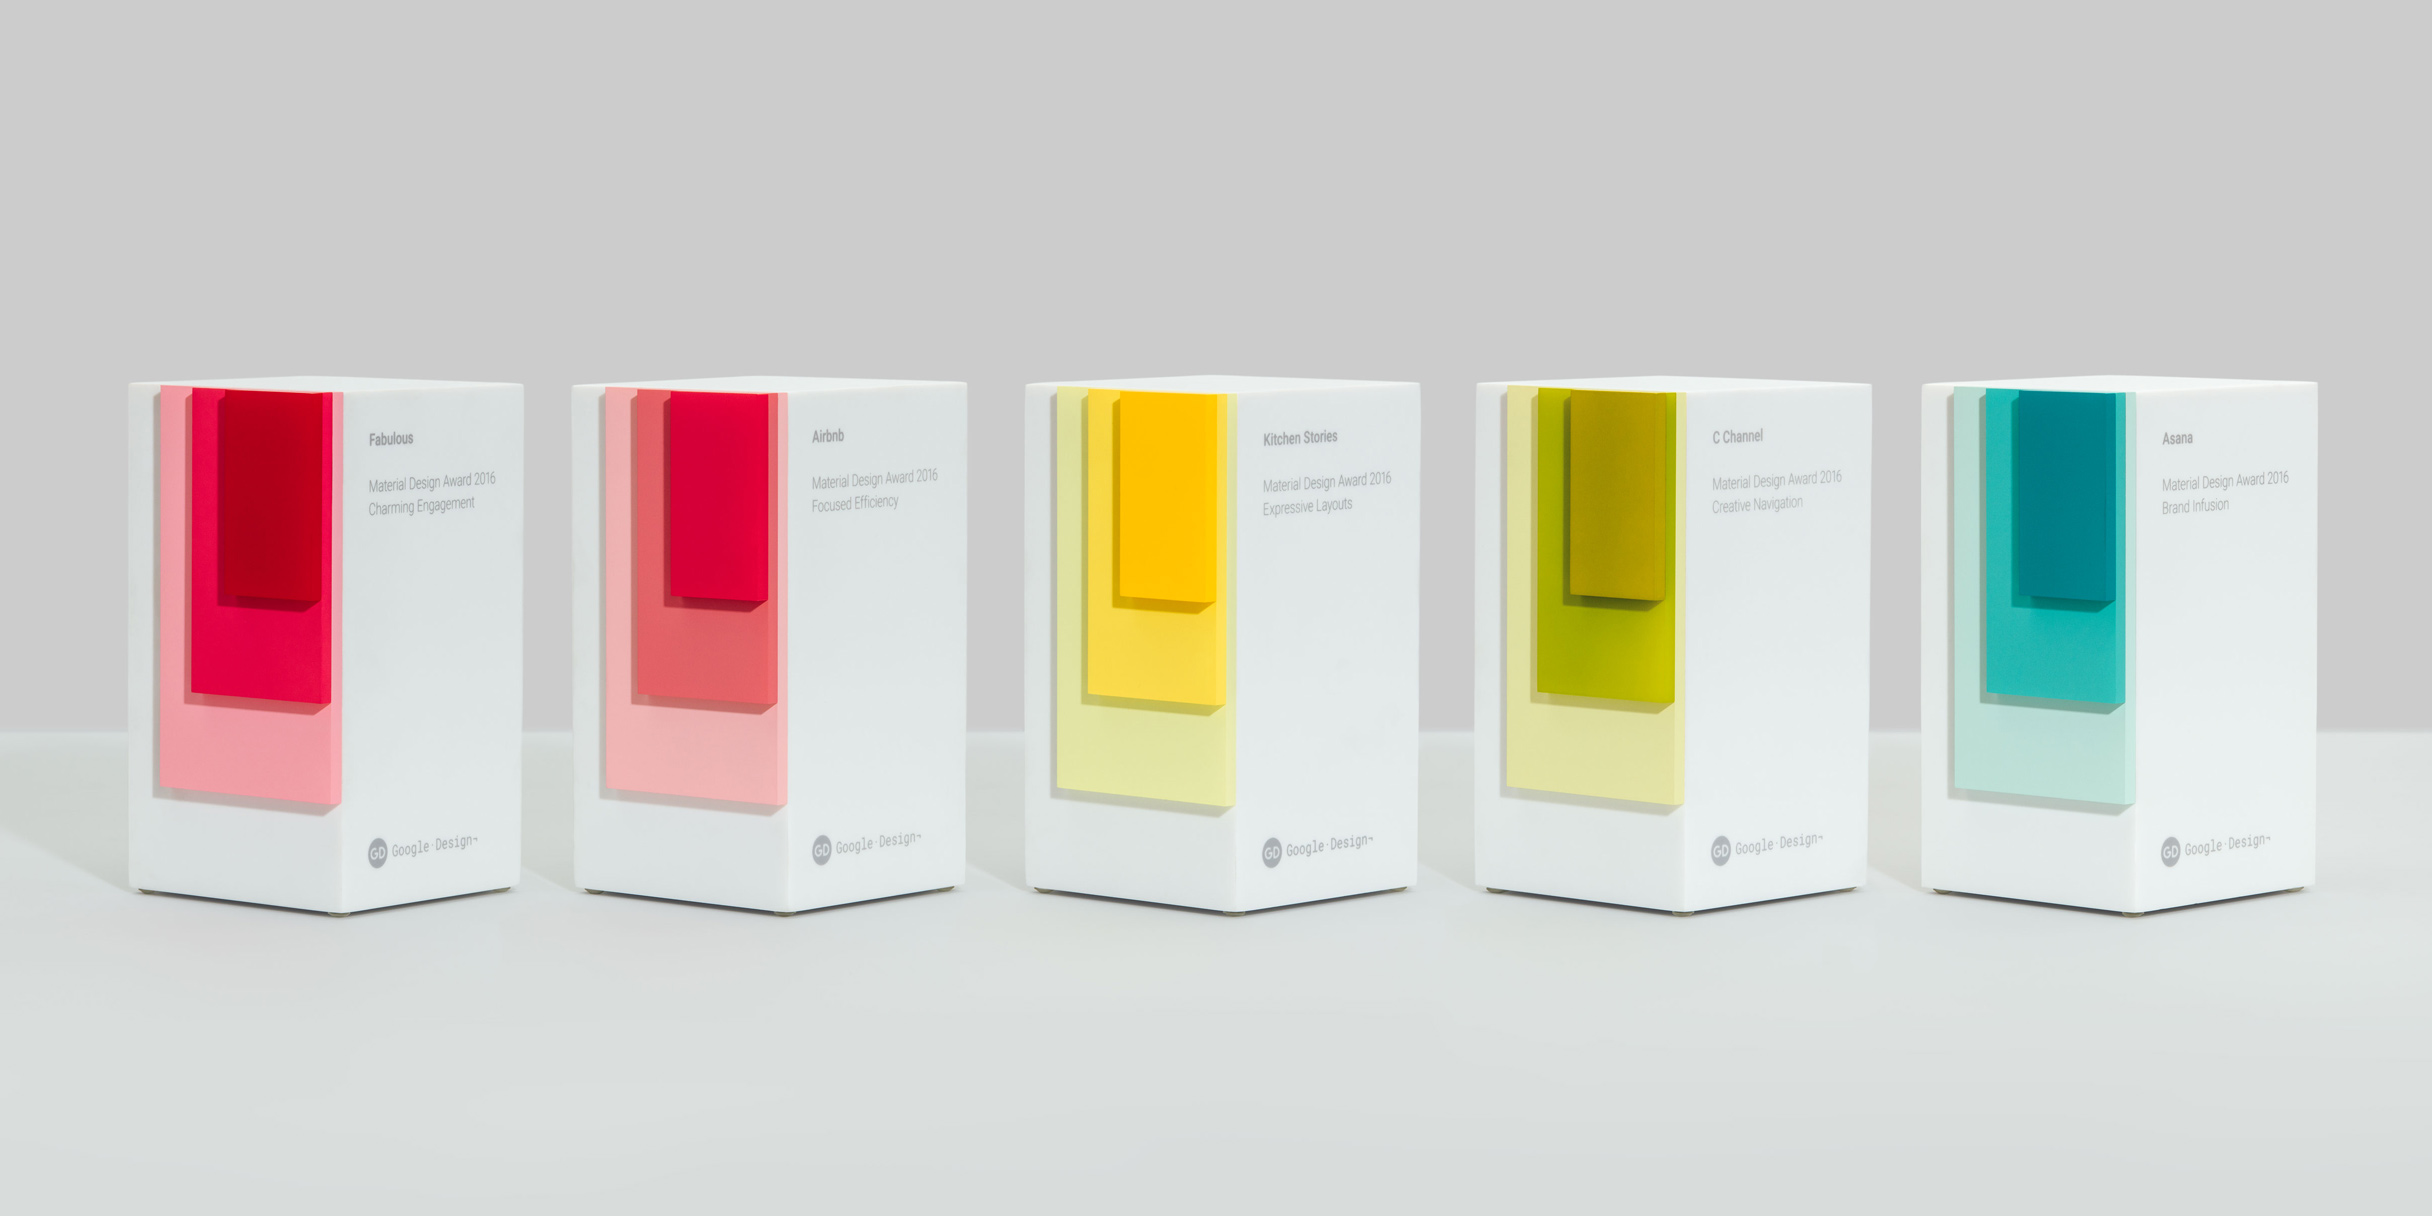 material_design_awards_2016_2x1.jpg